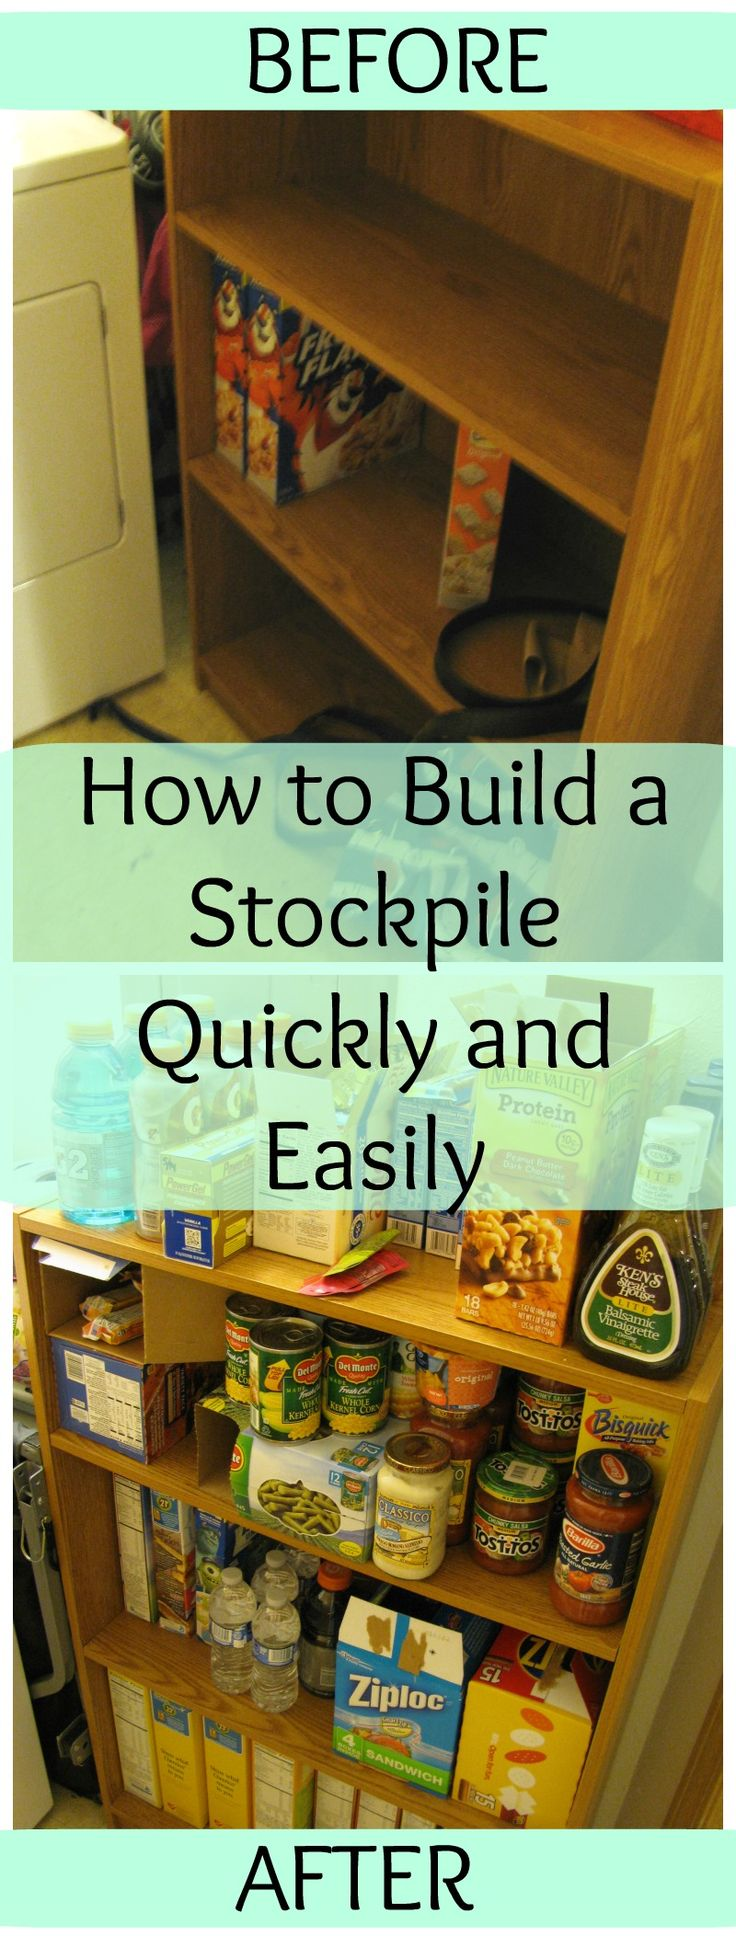 How to Build up a stockpile, and in a small apartment. Great tips for frugal living, couponing, organization and storage, and more!